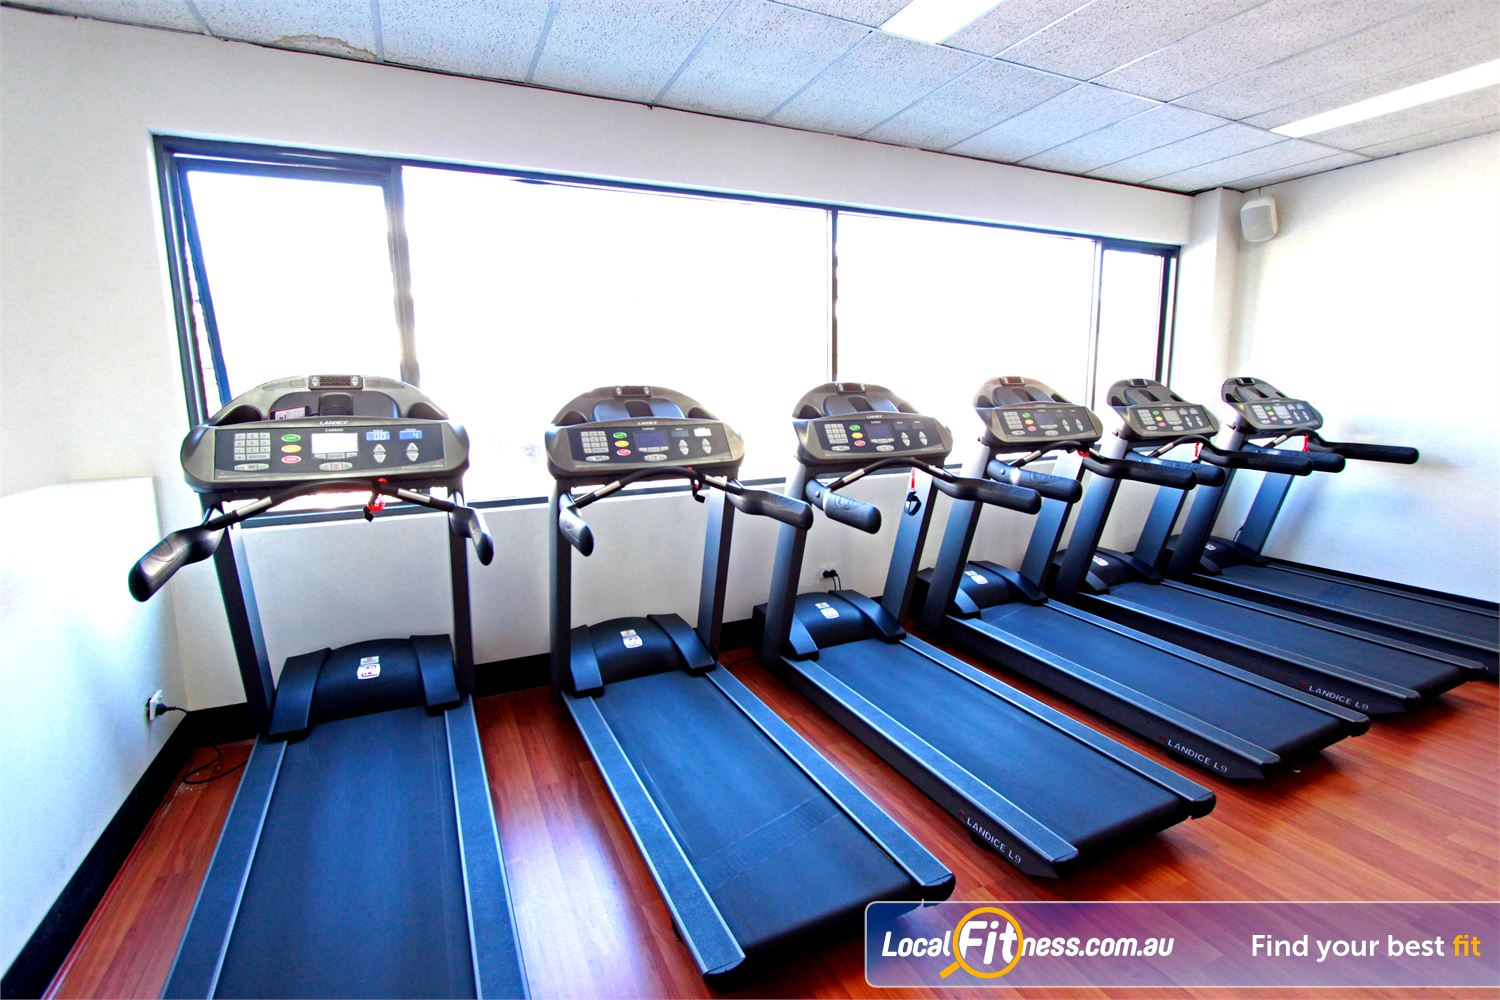 Carlton Fitness Gym Near Princes Hill Enjoy scenic views from our second floor cardio area.